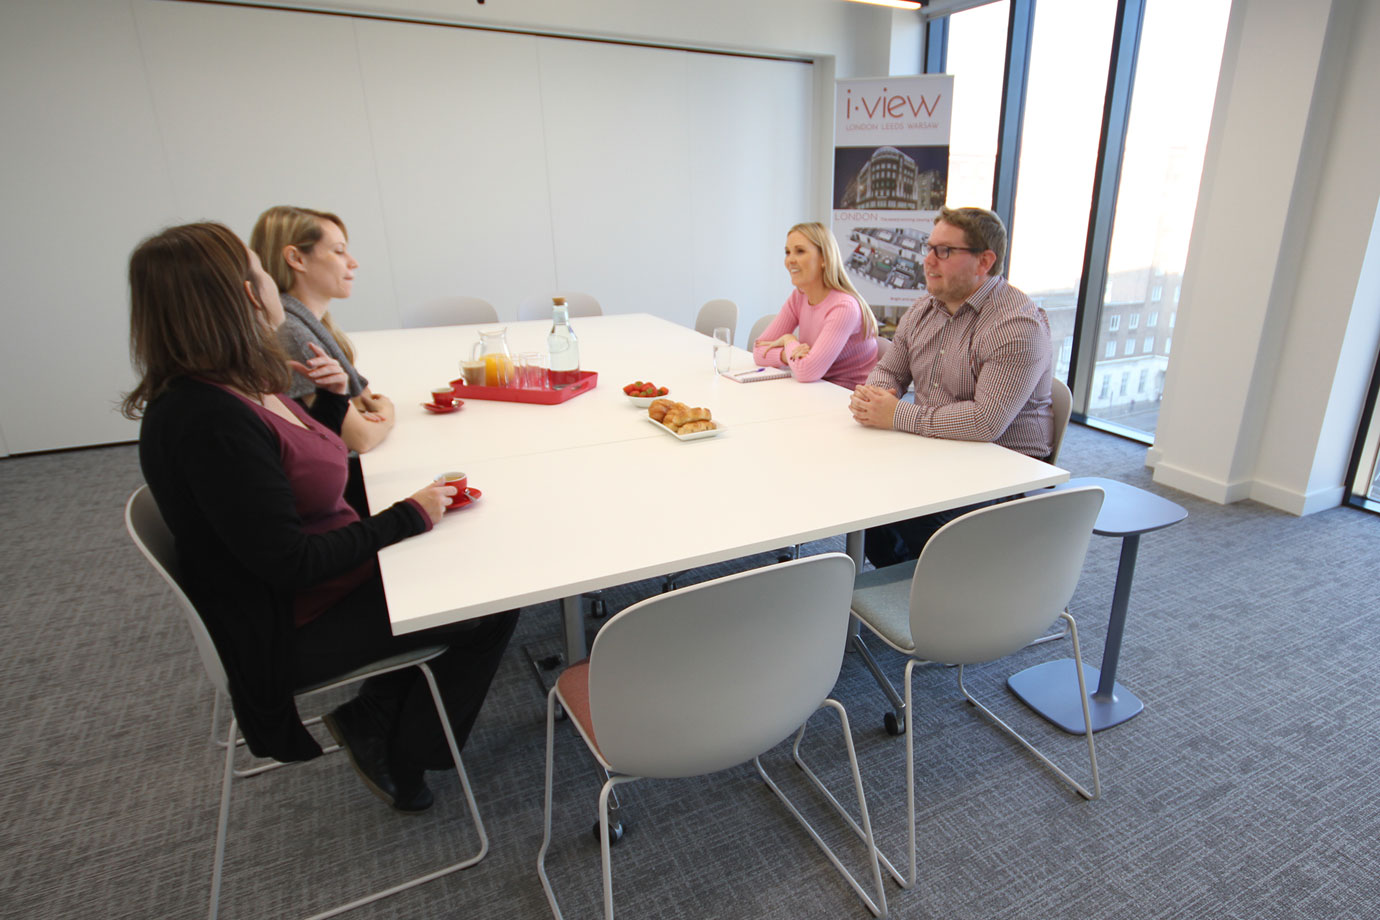 Meeting rooms & Events at i-view Leeds